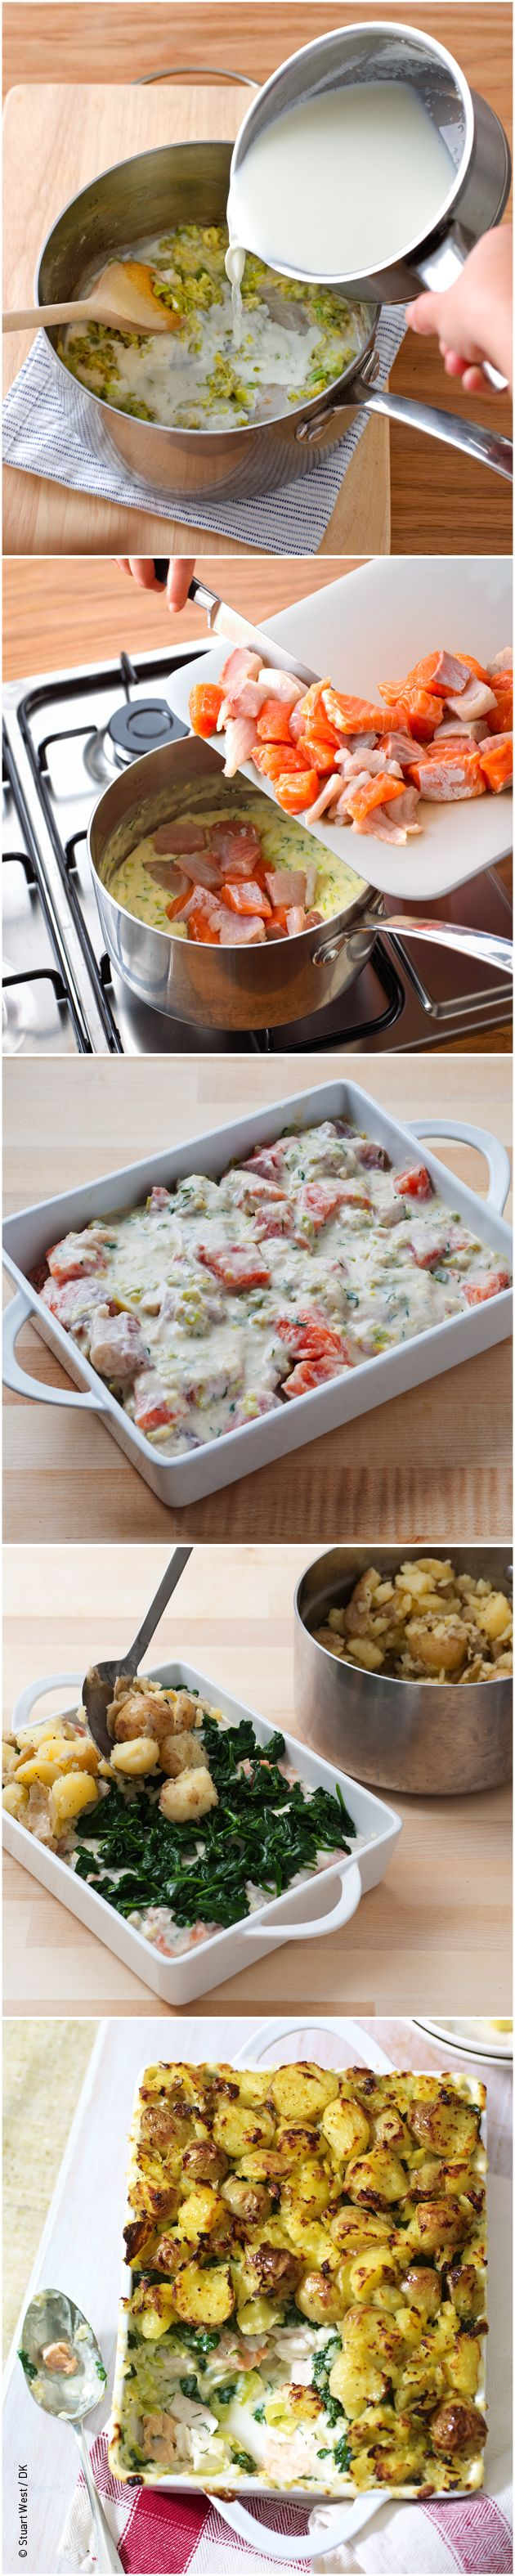 Recipe for fish pie with crushed potato topping from Mary Berry Cooks the Perfect.  #MaryBerry #CooksthePerfect #recipe #fishpie